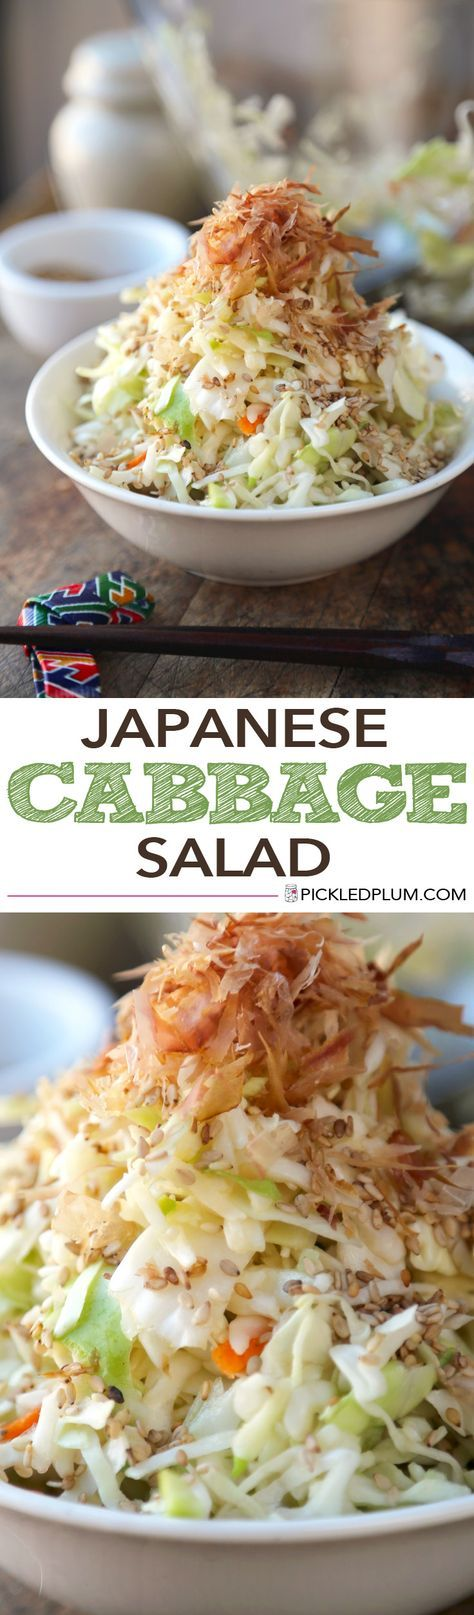 Japanese Cabbage Salad